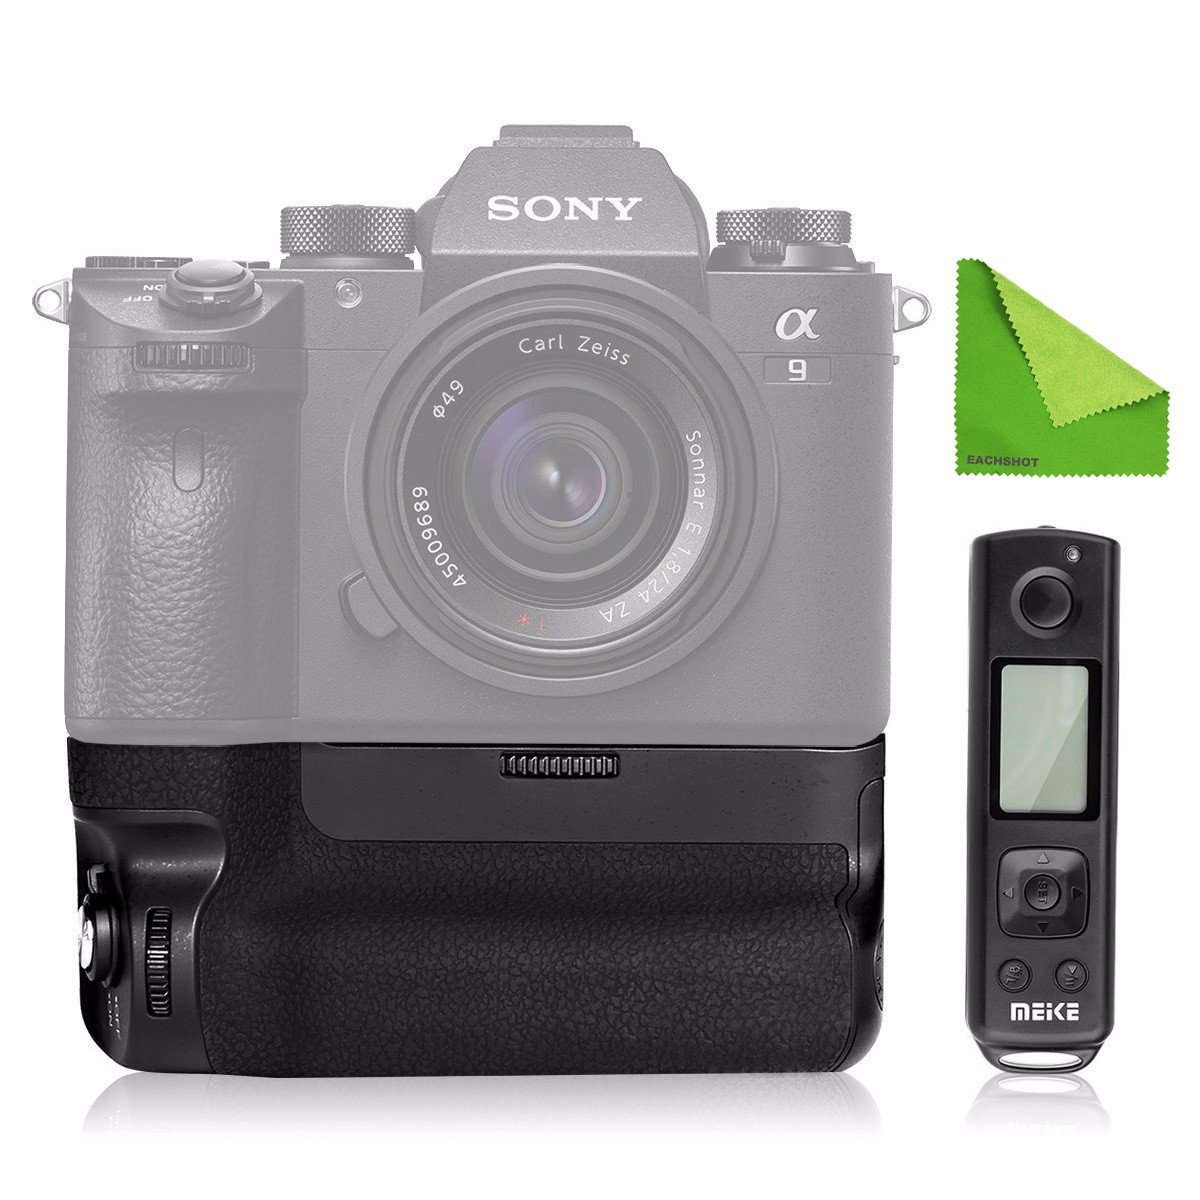 Meike MK-A9 PRO / MK-A7R-III PRO Battery Grip as VGC3EM for Sony A9 A7R III Built-in 2.4GHz Remote Controller Up to 100M to Control shooting Vertical-shooting Function w/ EACHSHOT Cleaning Cloth